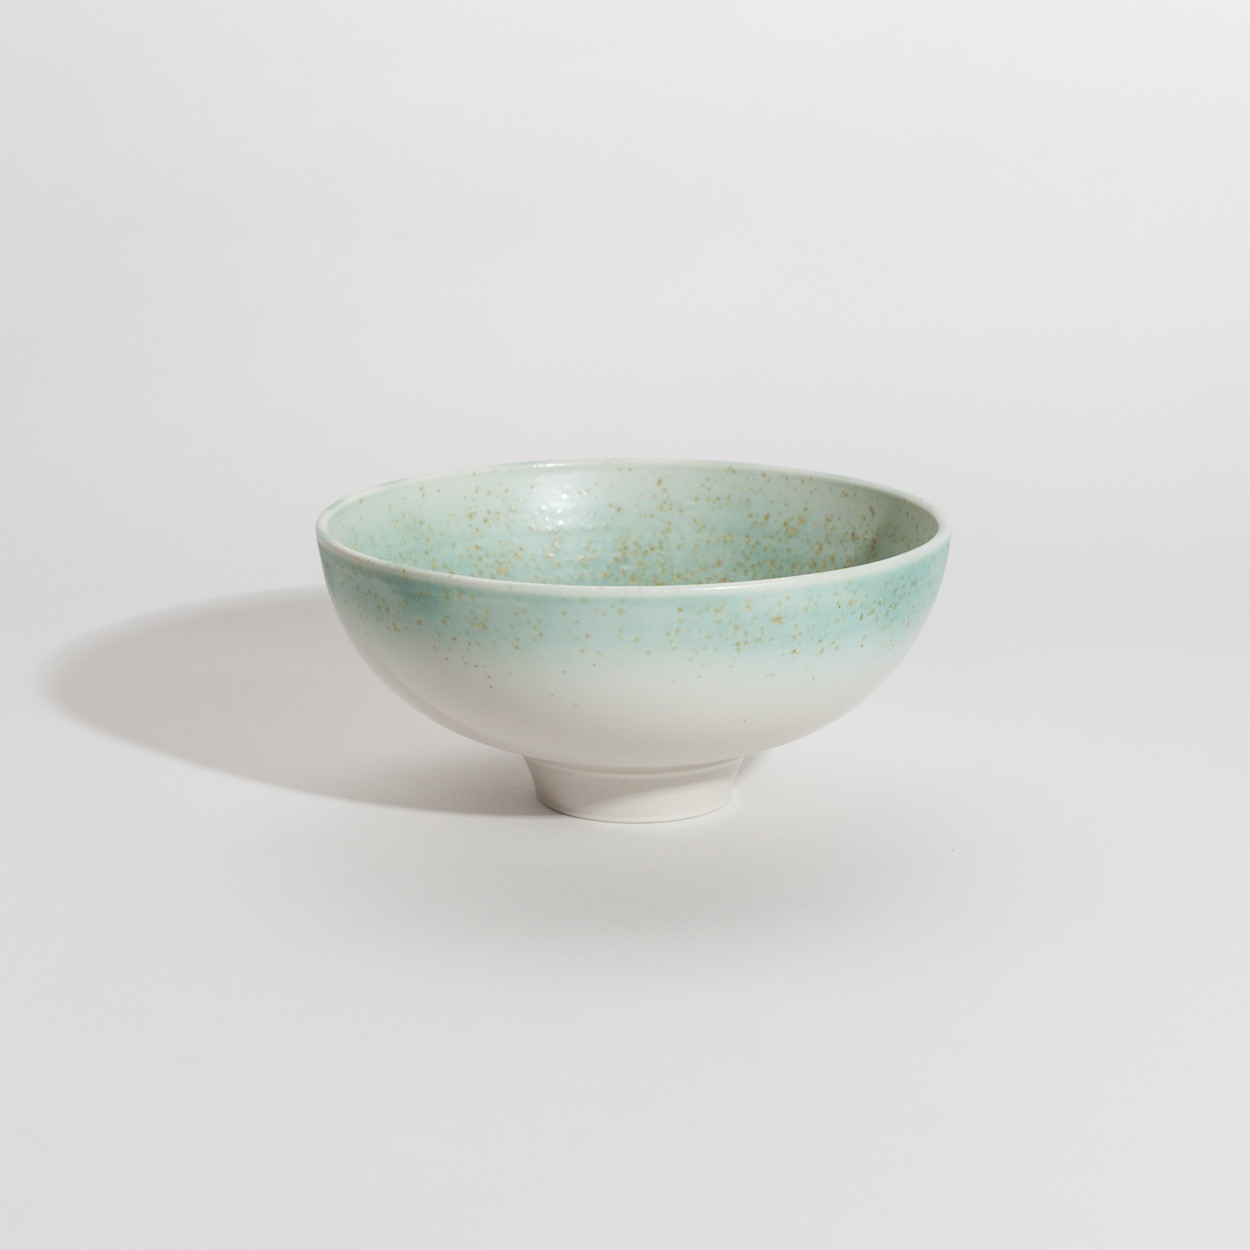 Porcelain bowl with green speckle glazed edge